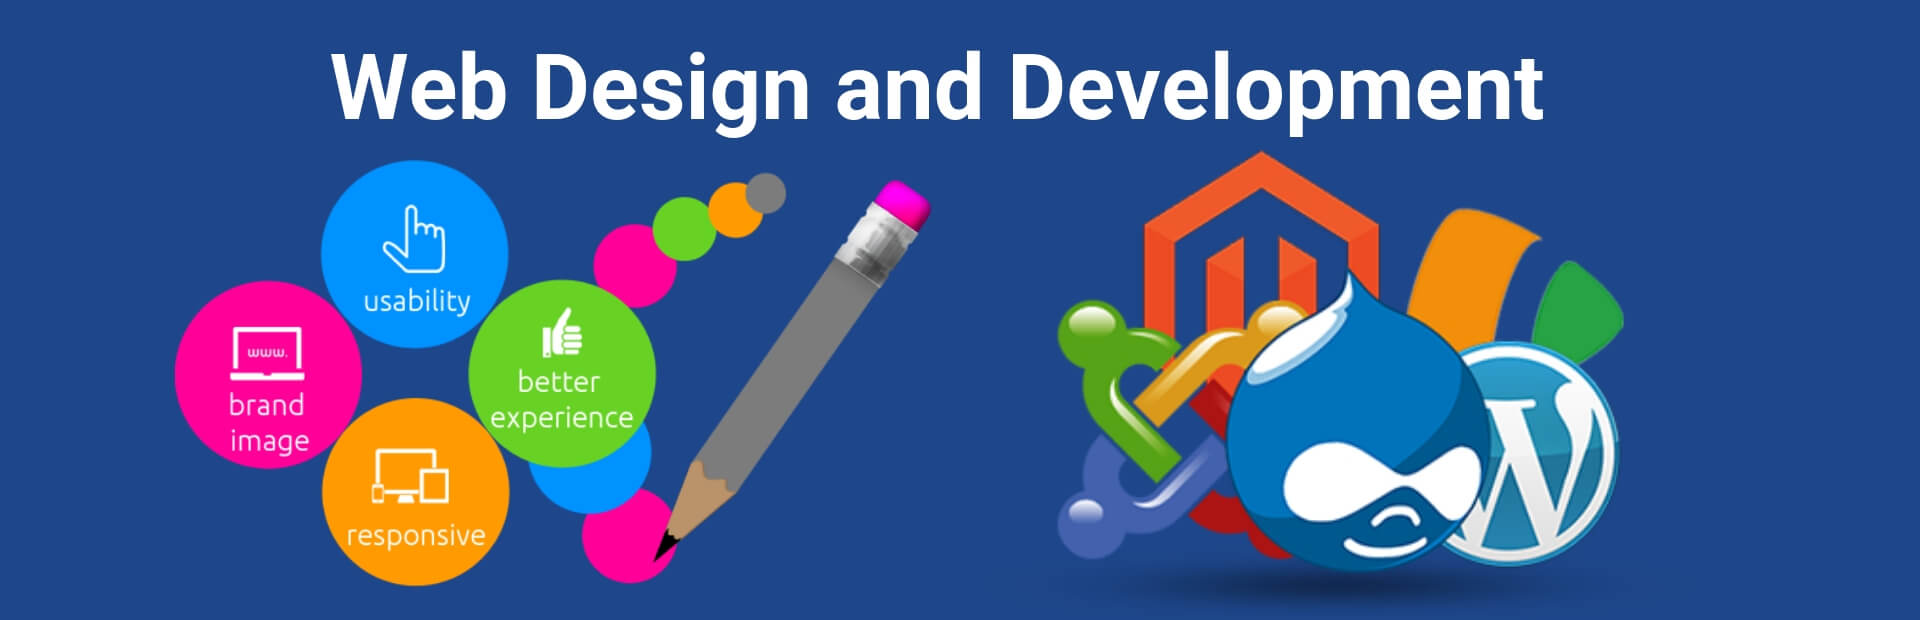 adv_17_web-design-and-development.jpg